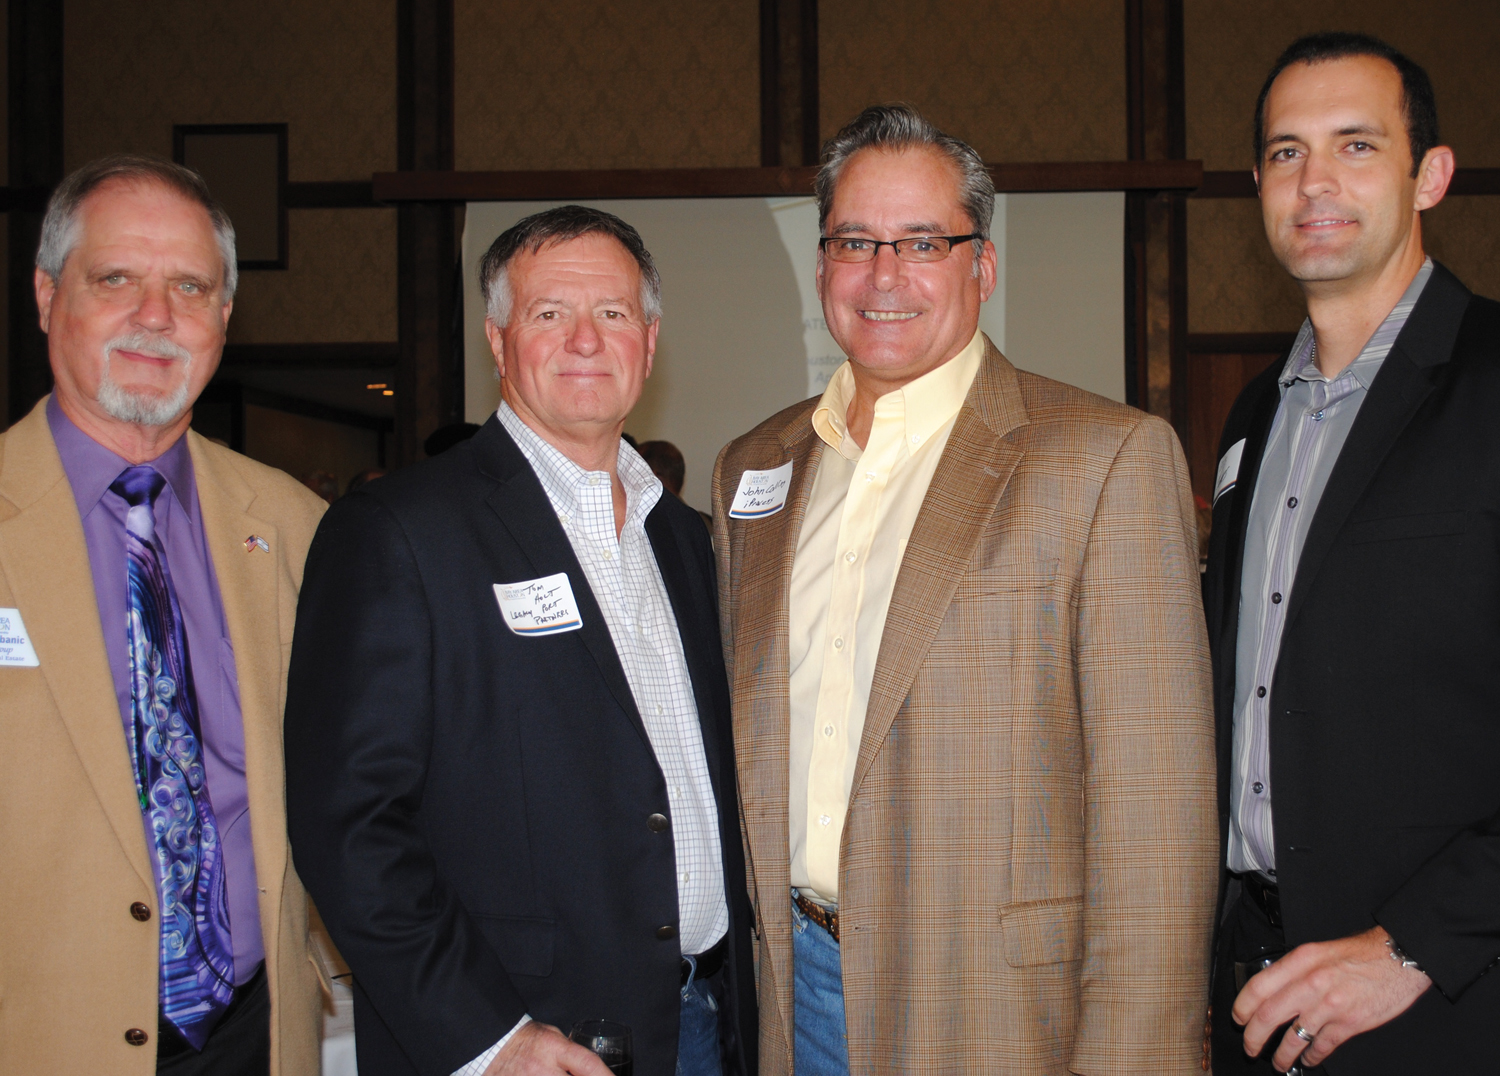 Simon Urbanic, Tom Holt, John Collins and James Waguespark, from left, were among the many attending the Bay Area Houston Economic Partnership State of the Port meeting at Lakewood Yacht Club.